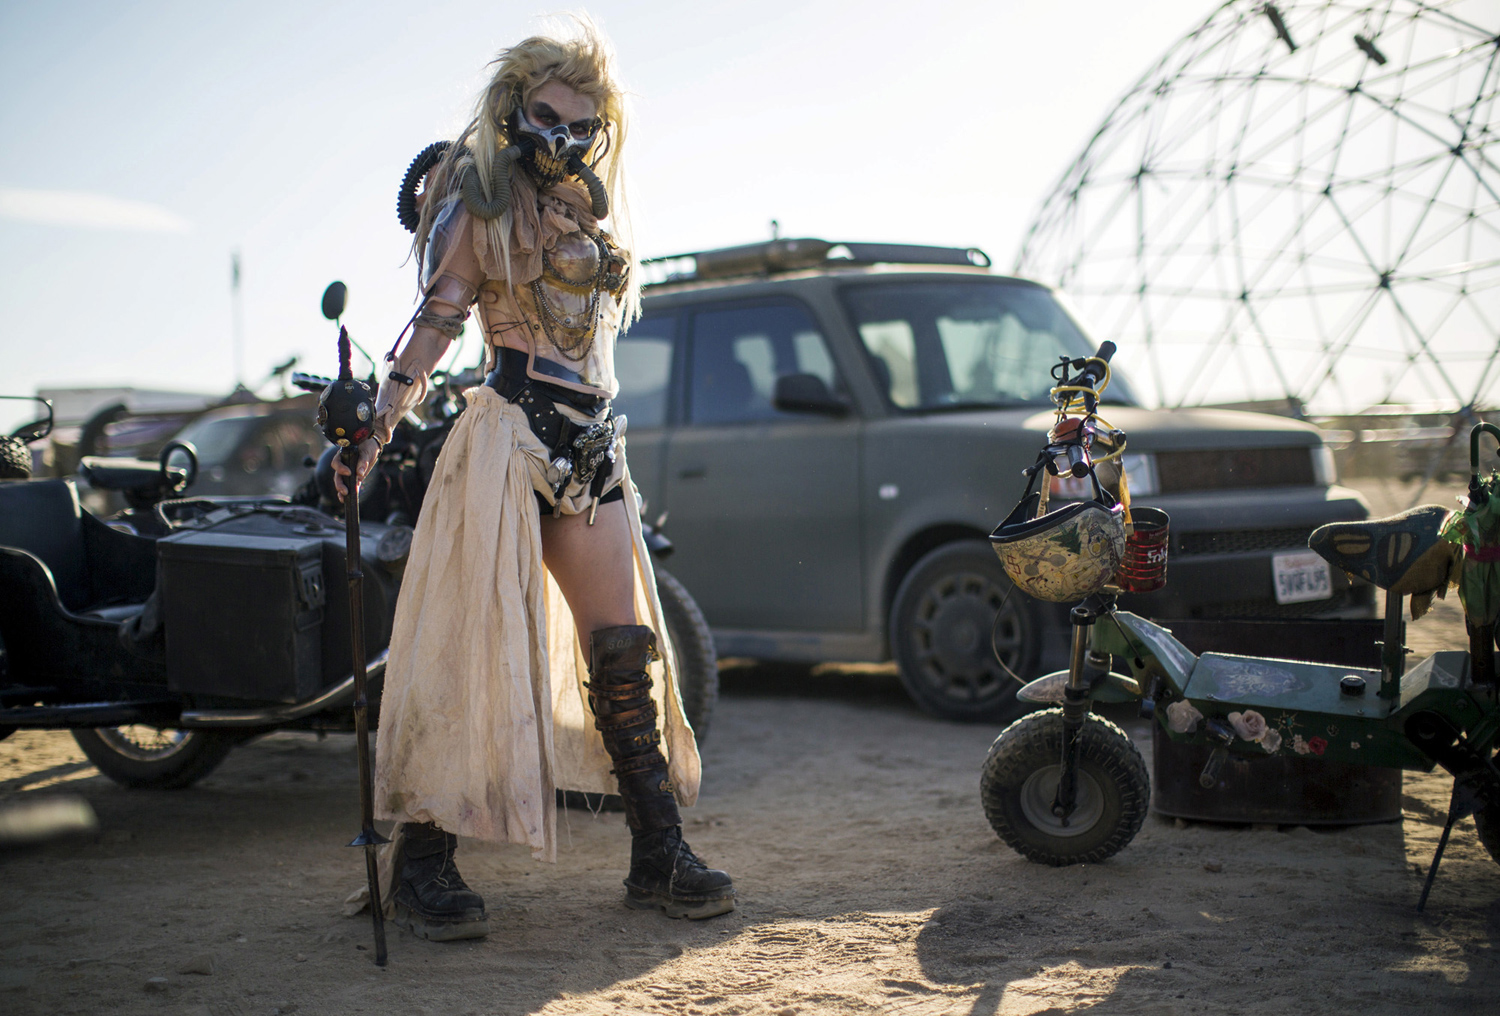 rc derby cars with Found Desirae Hepp Dressed As Immortan Joe From on gtaall as well Plymouth Rock further 184704 Spaceframe Front End in addition 923640 2001 F150 Fuse Box Diagram moreover Watch.